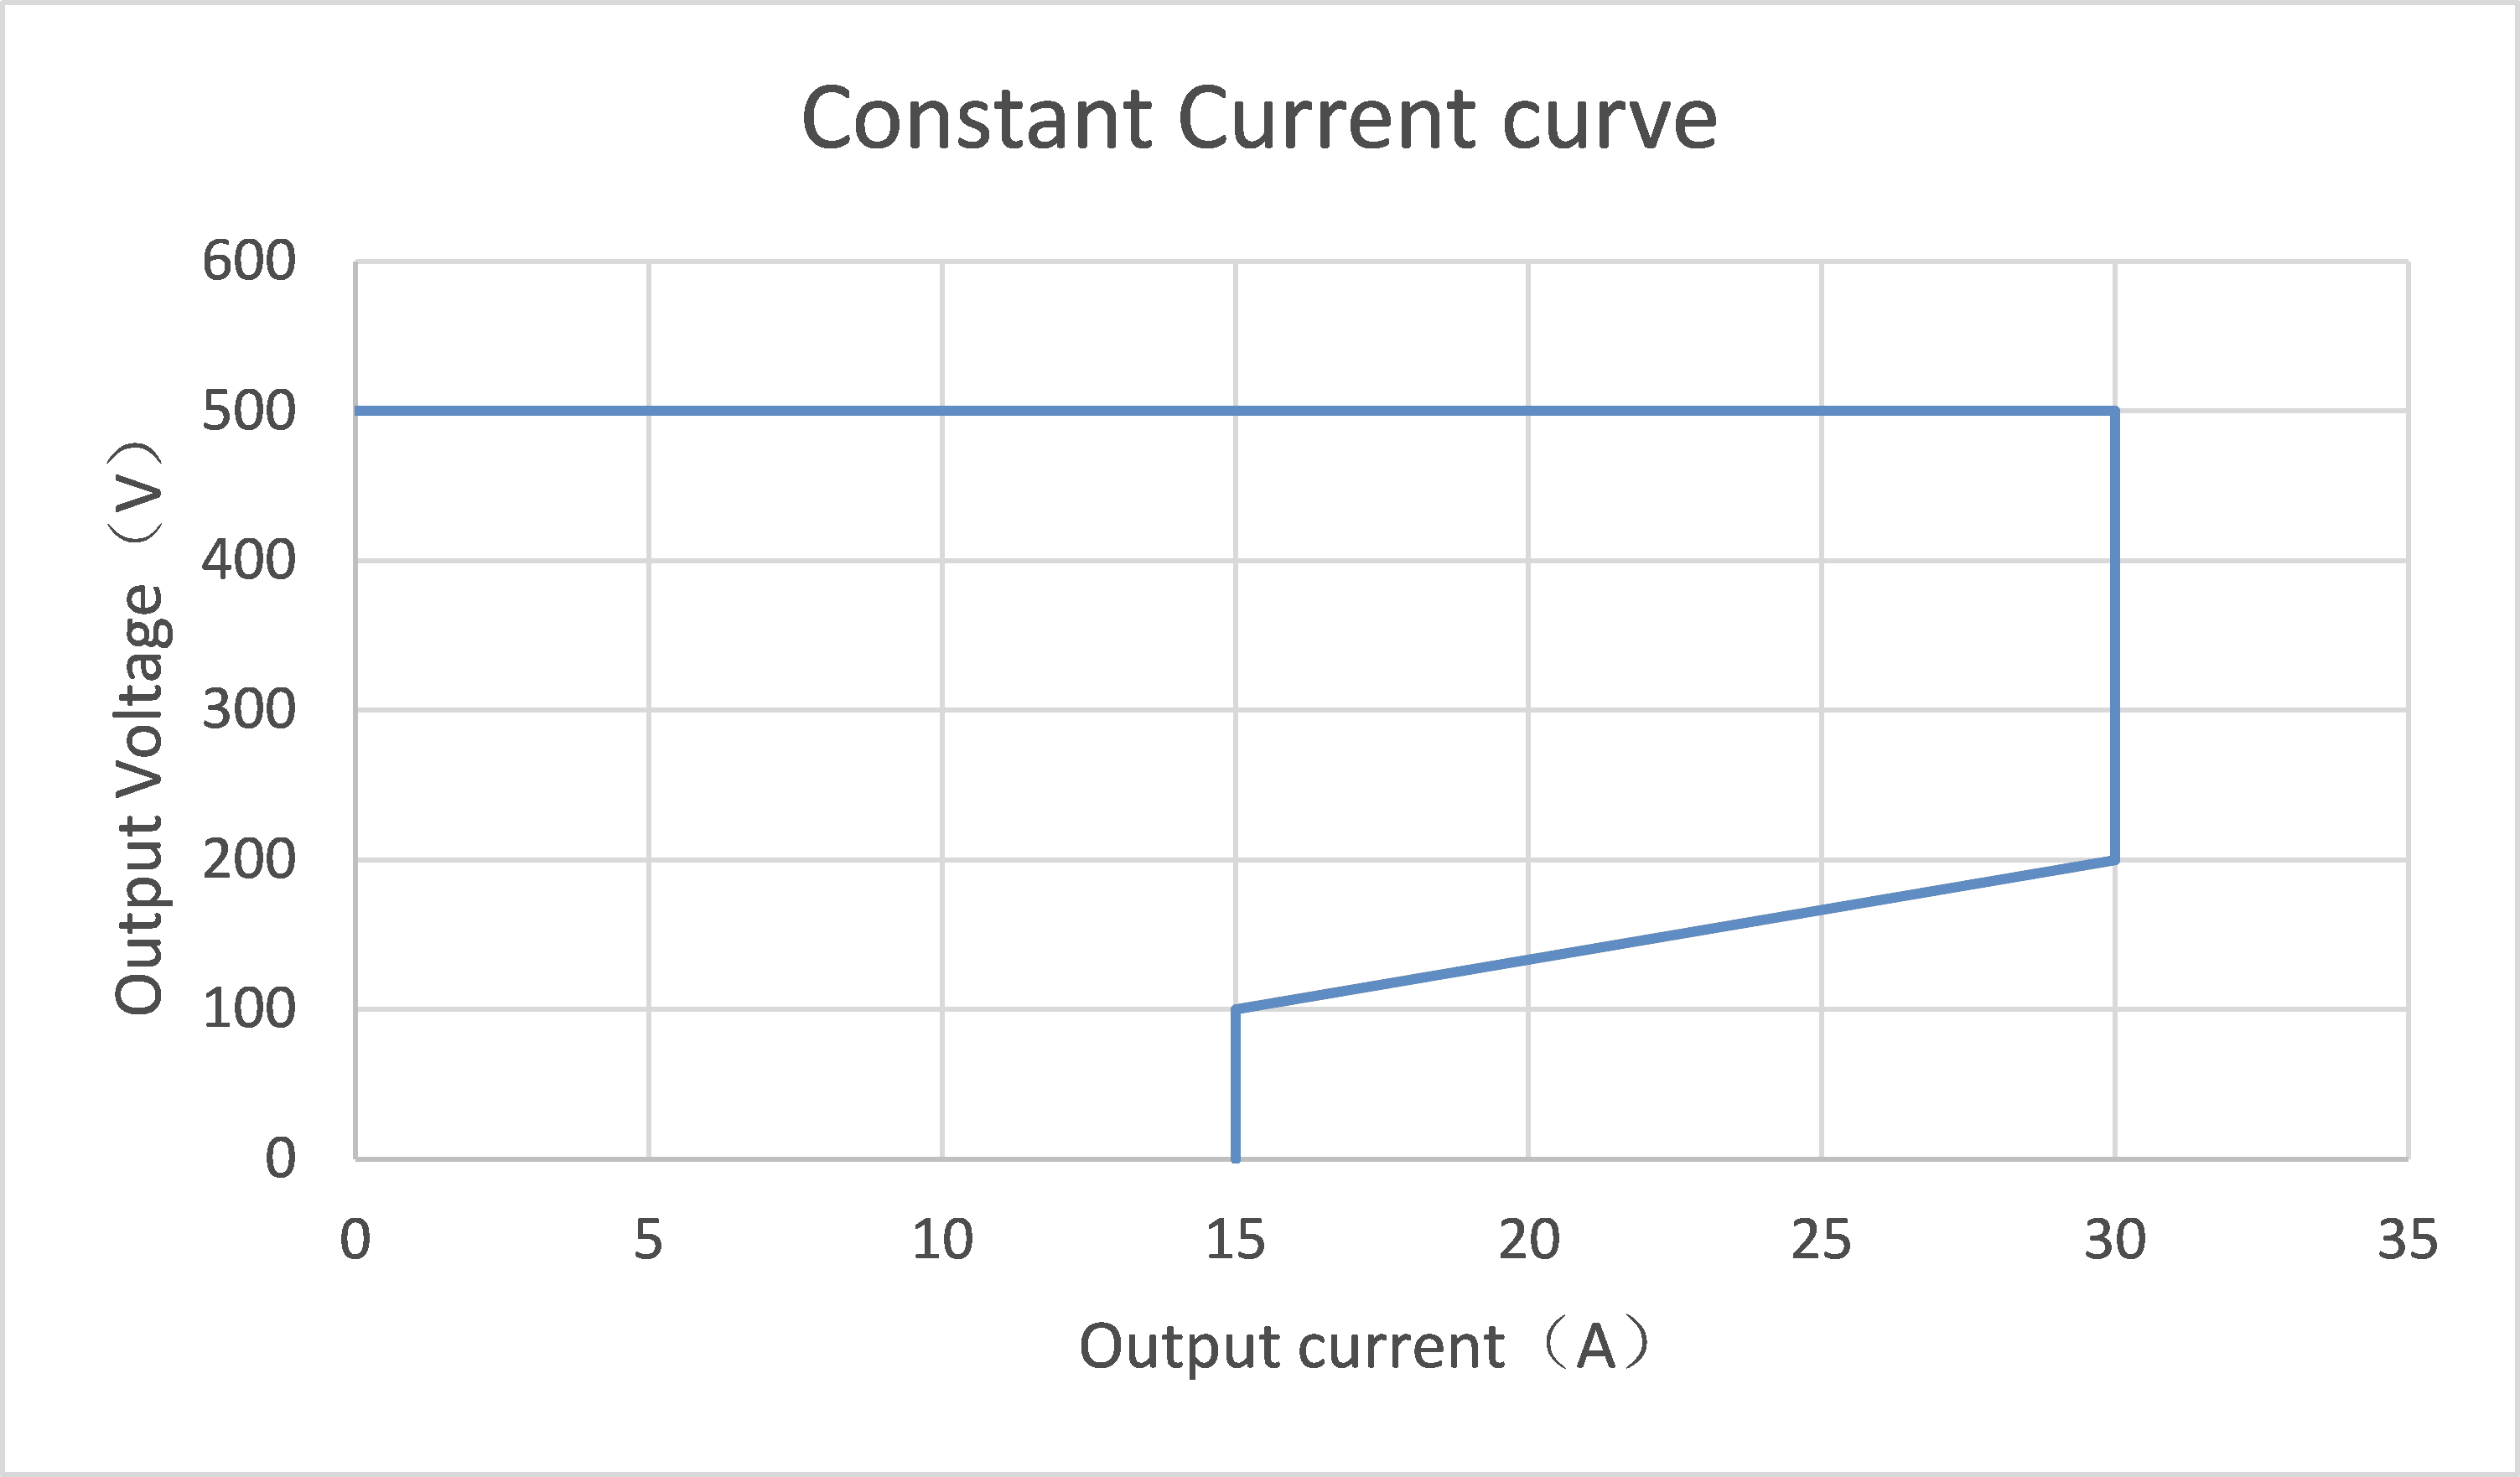 Constant Current curve of ev charger module